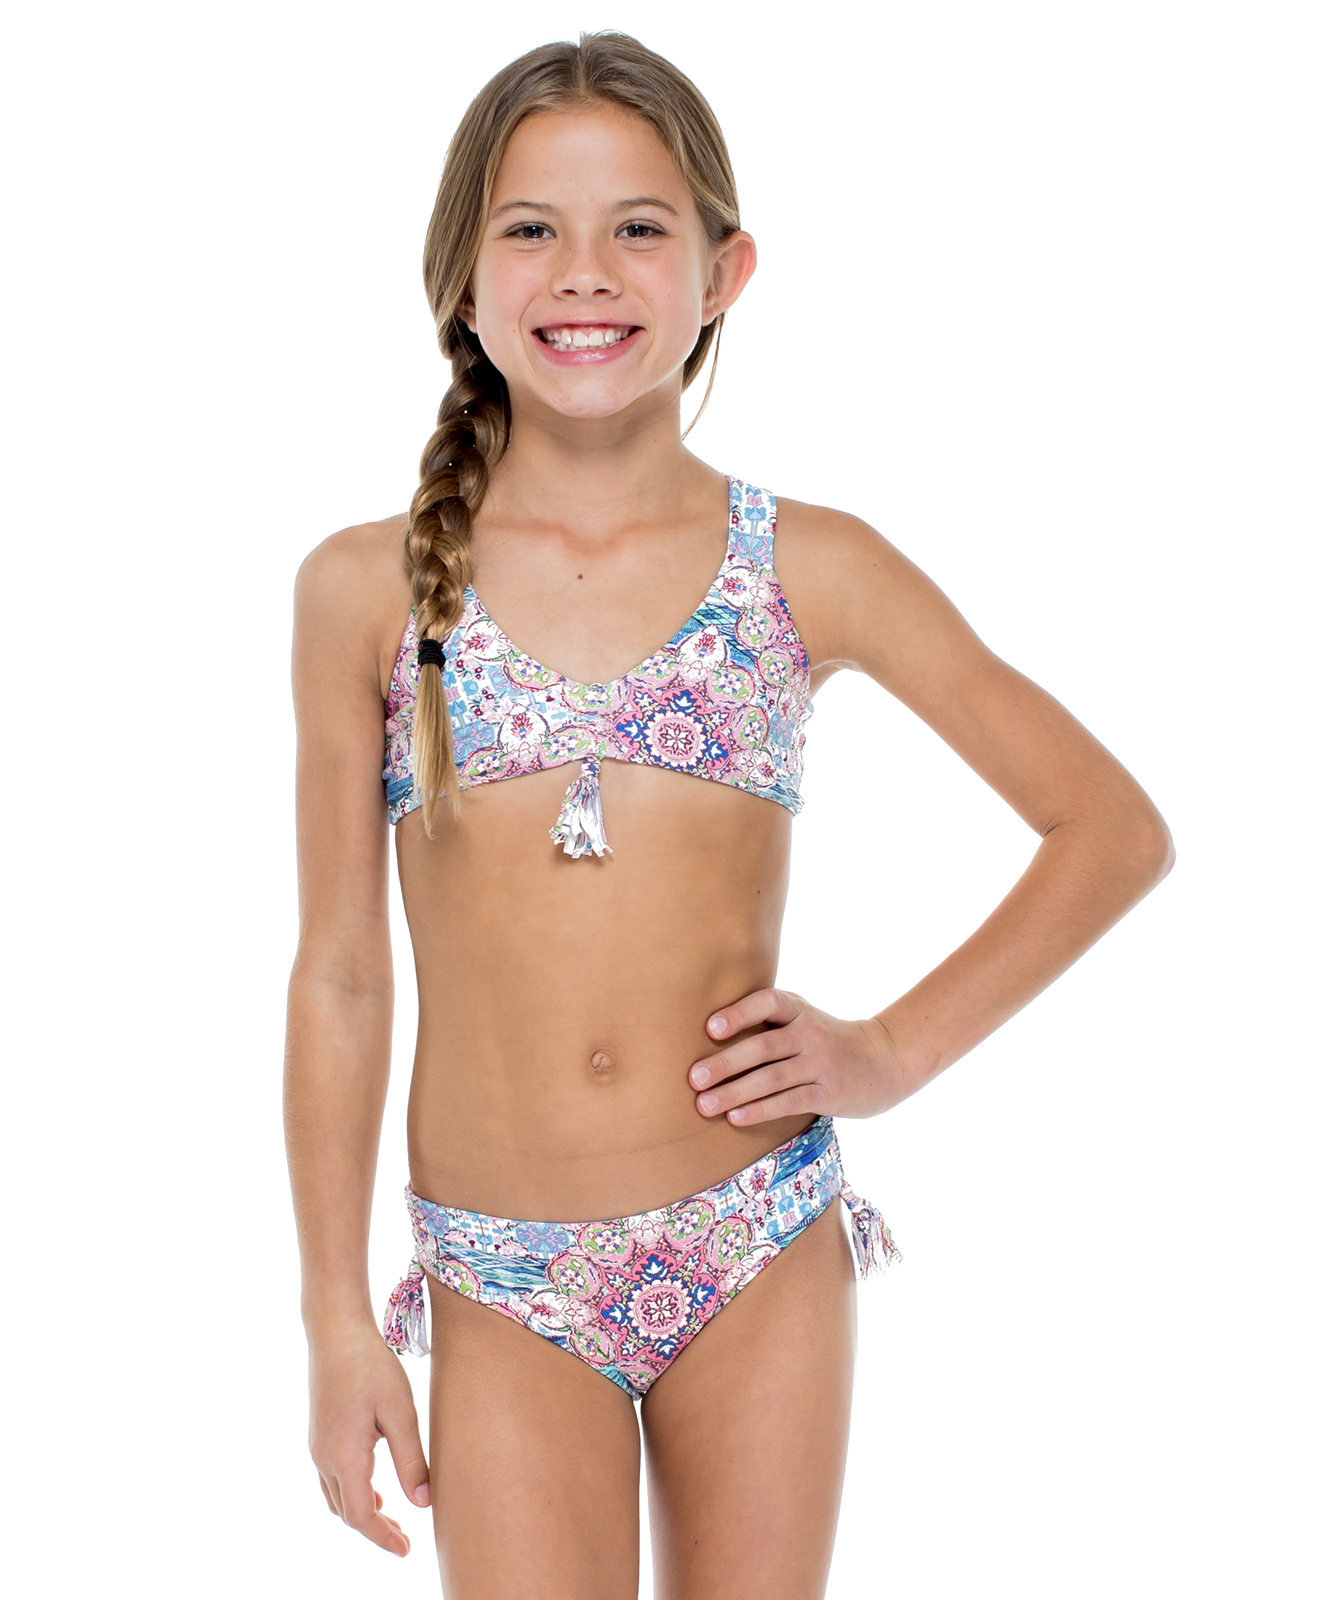 Kids Swimwear With Floats